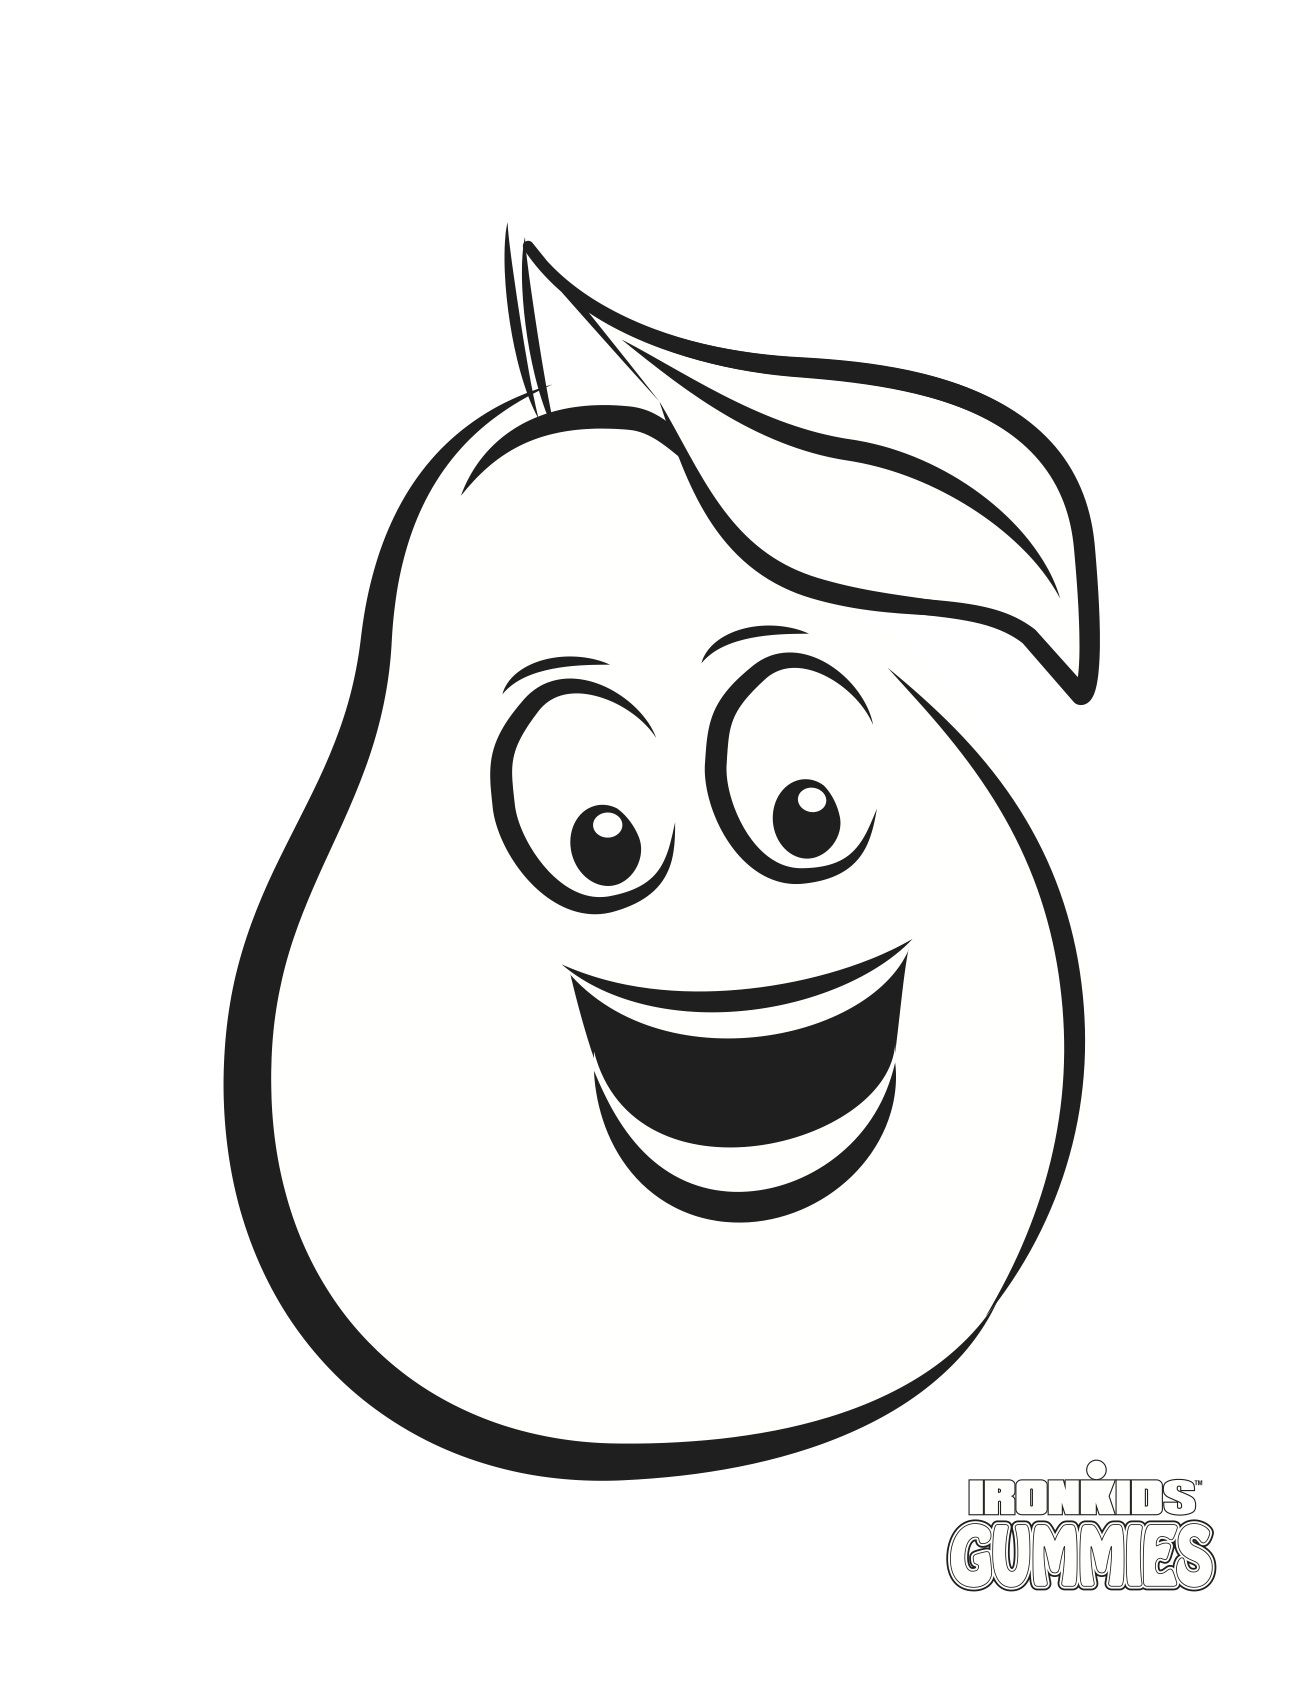 IronKids Fibre Pear Colouring Page Colouring Pages Pinterest